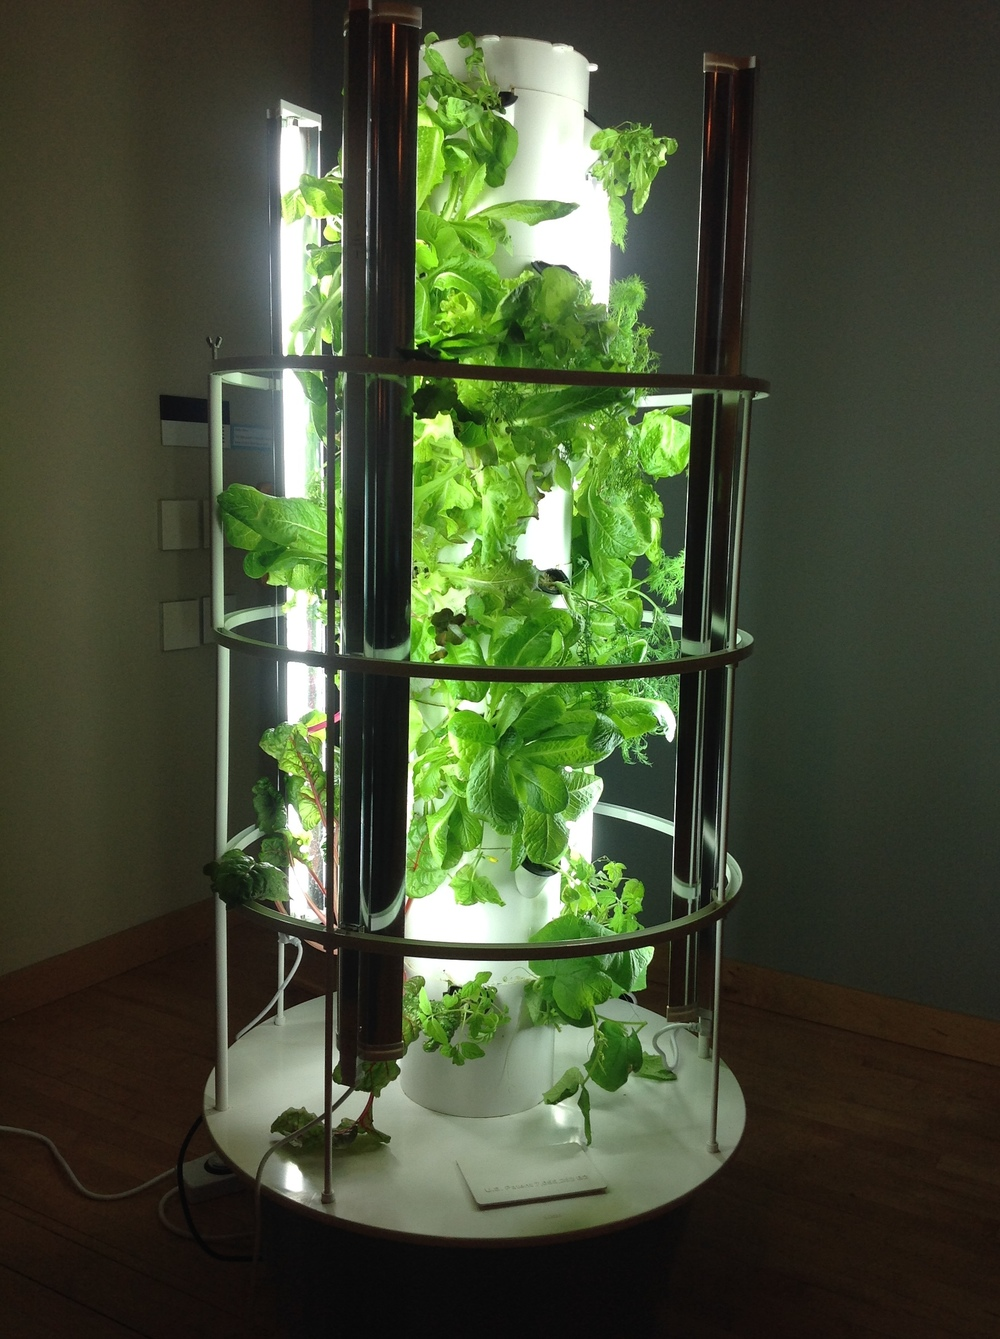 Tower Garden, A Vertical, Aeroponic Growing System, Allows You To Grow Up  To 20 Vegetables, Herbs, Fruits And Flowers In Less Than Three Square  Feetu2014indoors ...